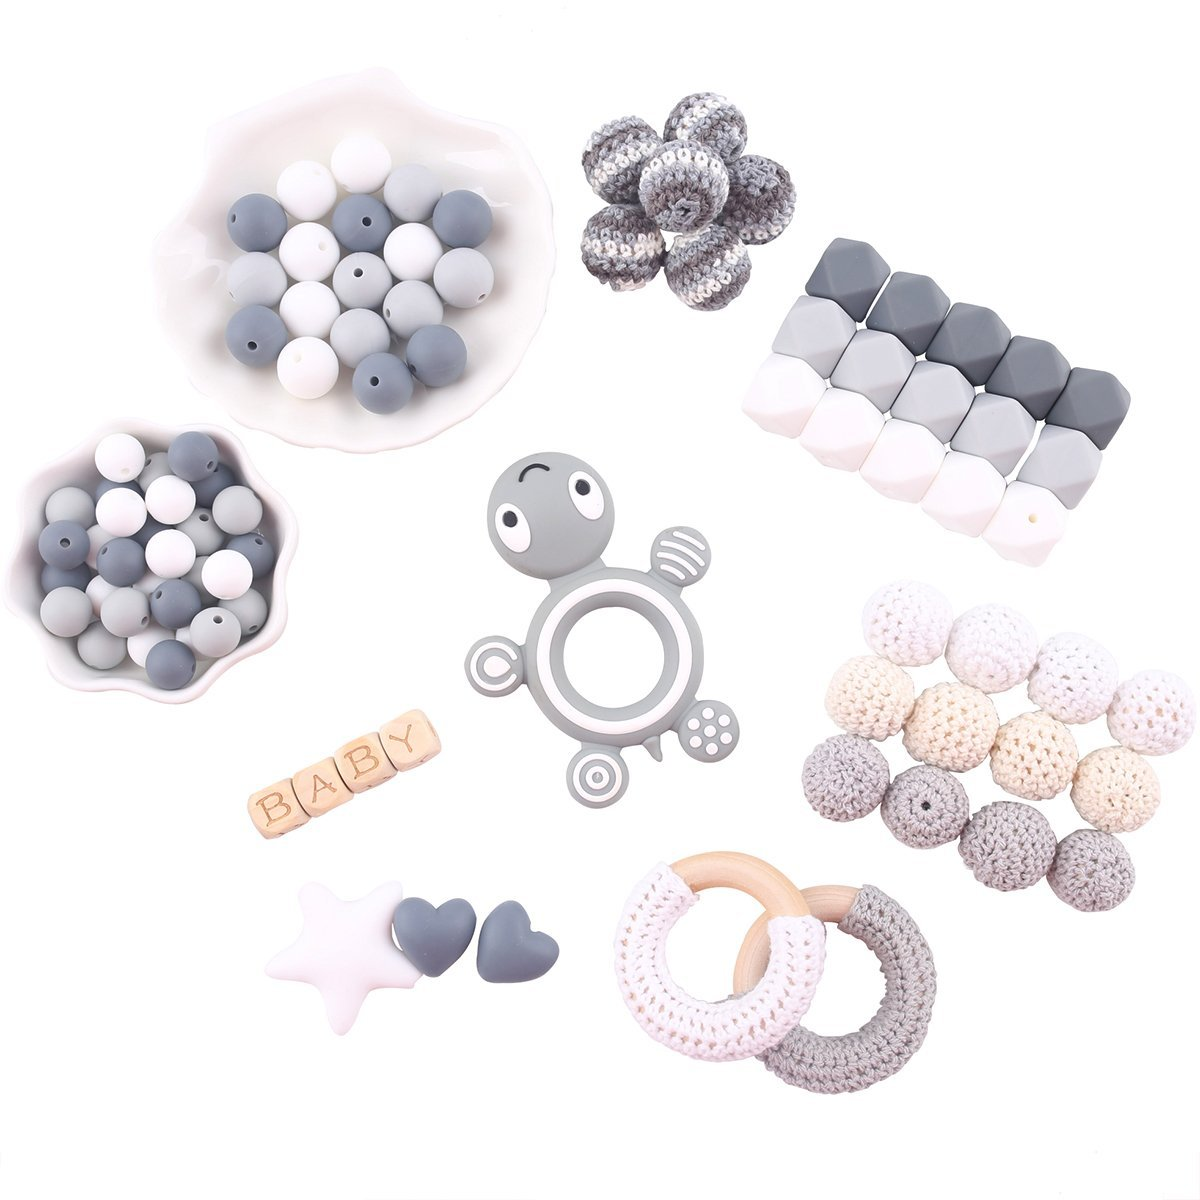 Baby Love Home Pacifier Clip Teething Beads Series Silicone Teether Beads BPA Free DIY Chewable Jewelry Nursing Necklace Accessories Grey Turtle Pendant Kit